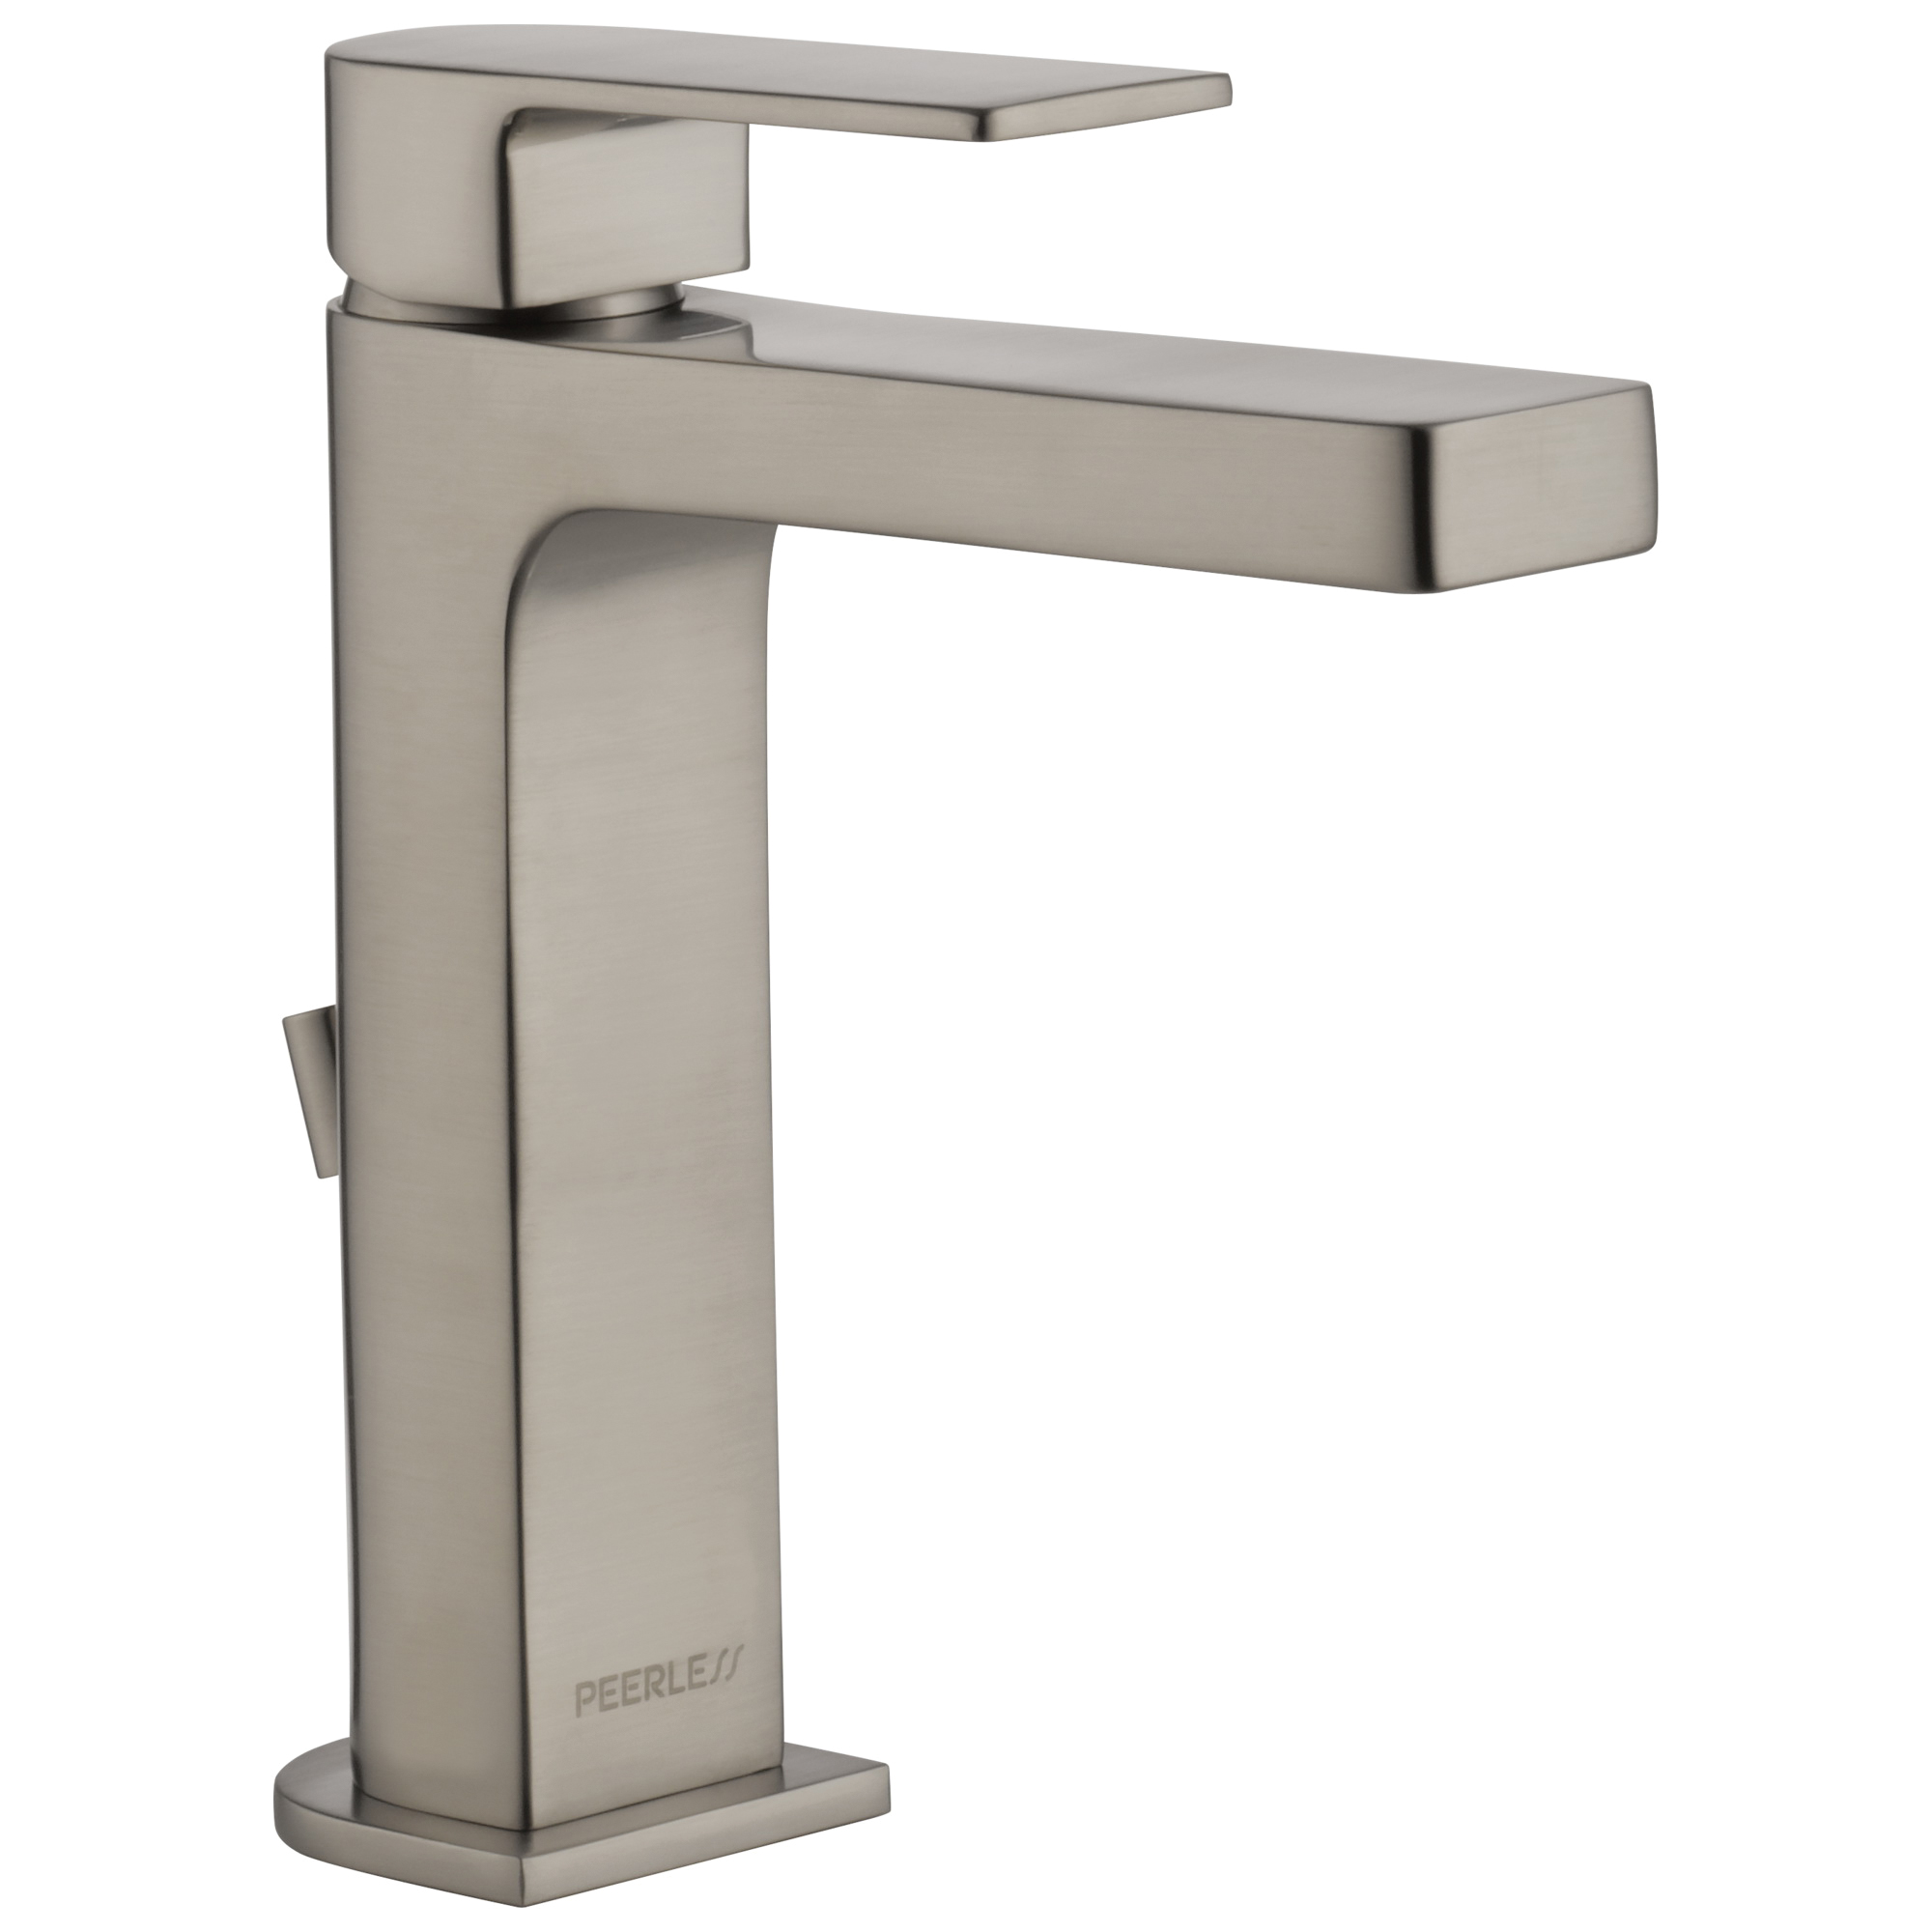 Peerless® P1519LF-BN-HA Bathroom Faucet, Xander™, Brushed Nickel, 1 Handles, 50/50 Pop-Up Drain, 1 gpm